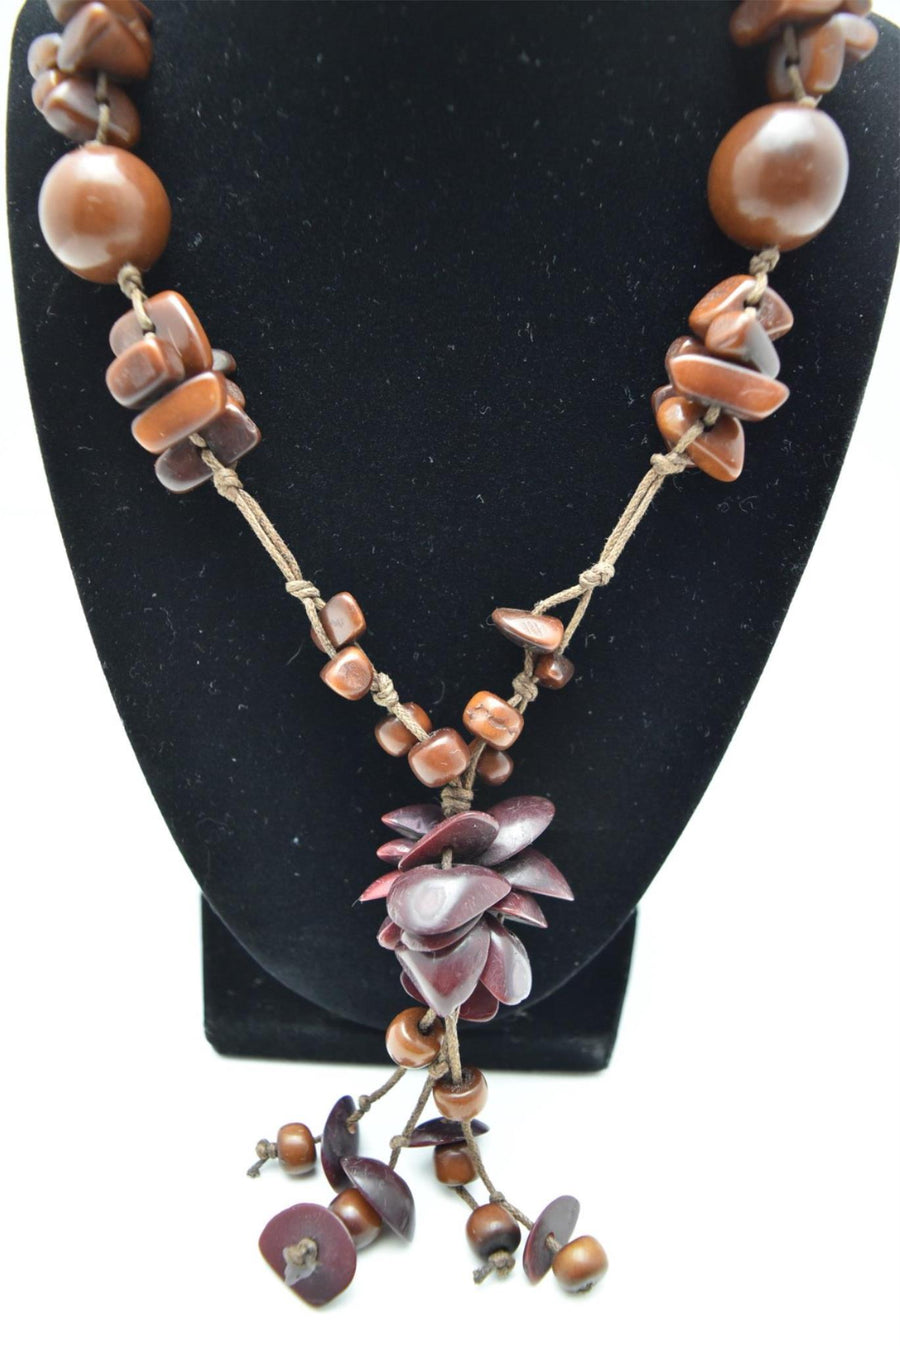 TAGUA Nut All Natural Necklace Brown Handmade in Ecuador Organic, Vegan